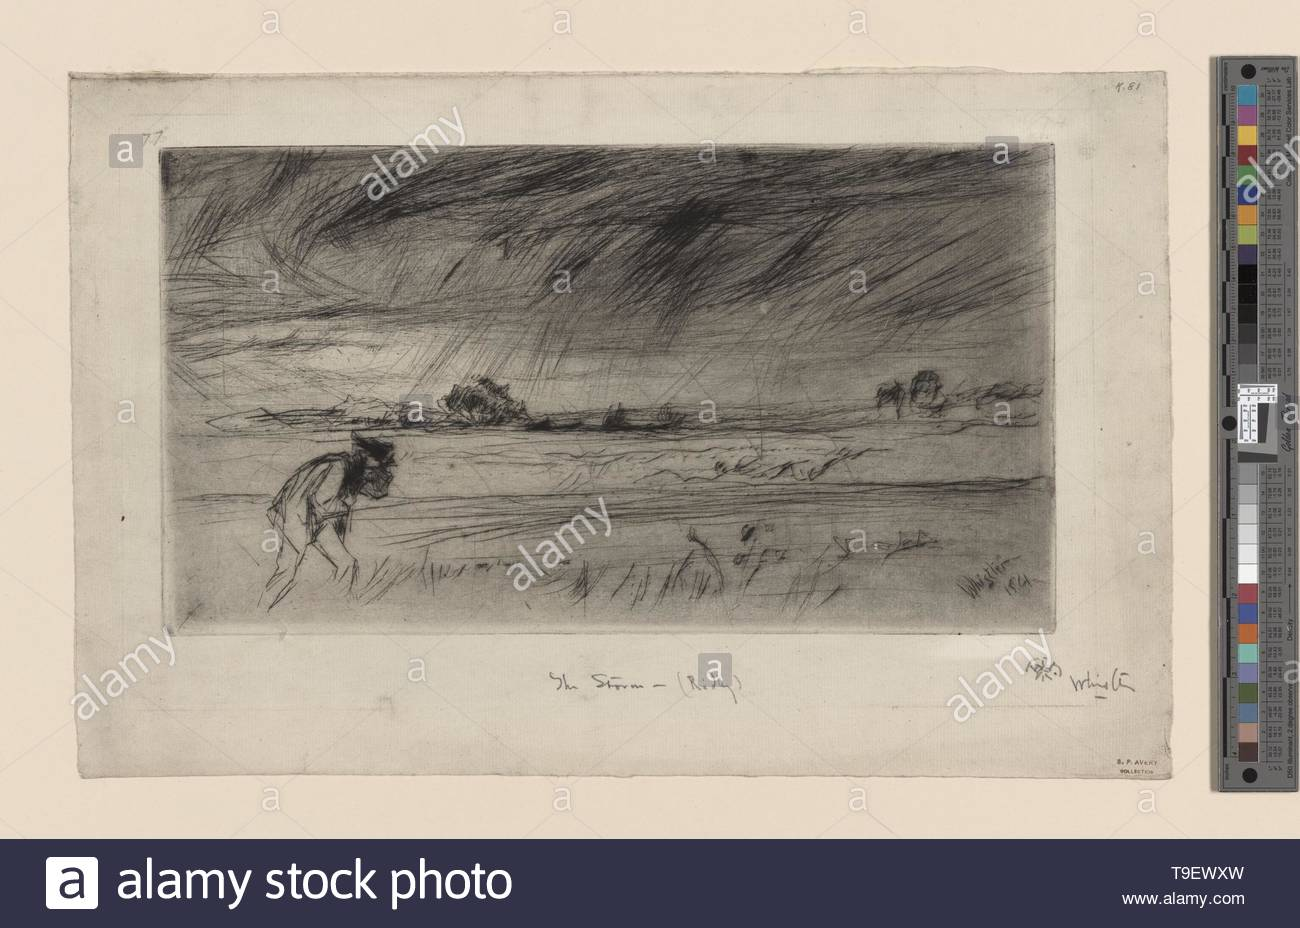 Whistler,JamesMcNeill(1834-1903)-The storm [cancelled plate] - Stock Image